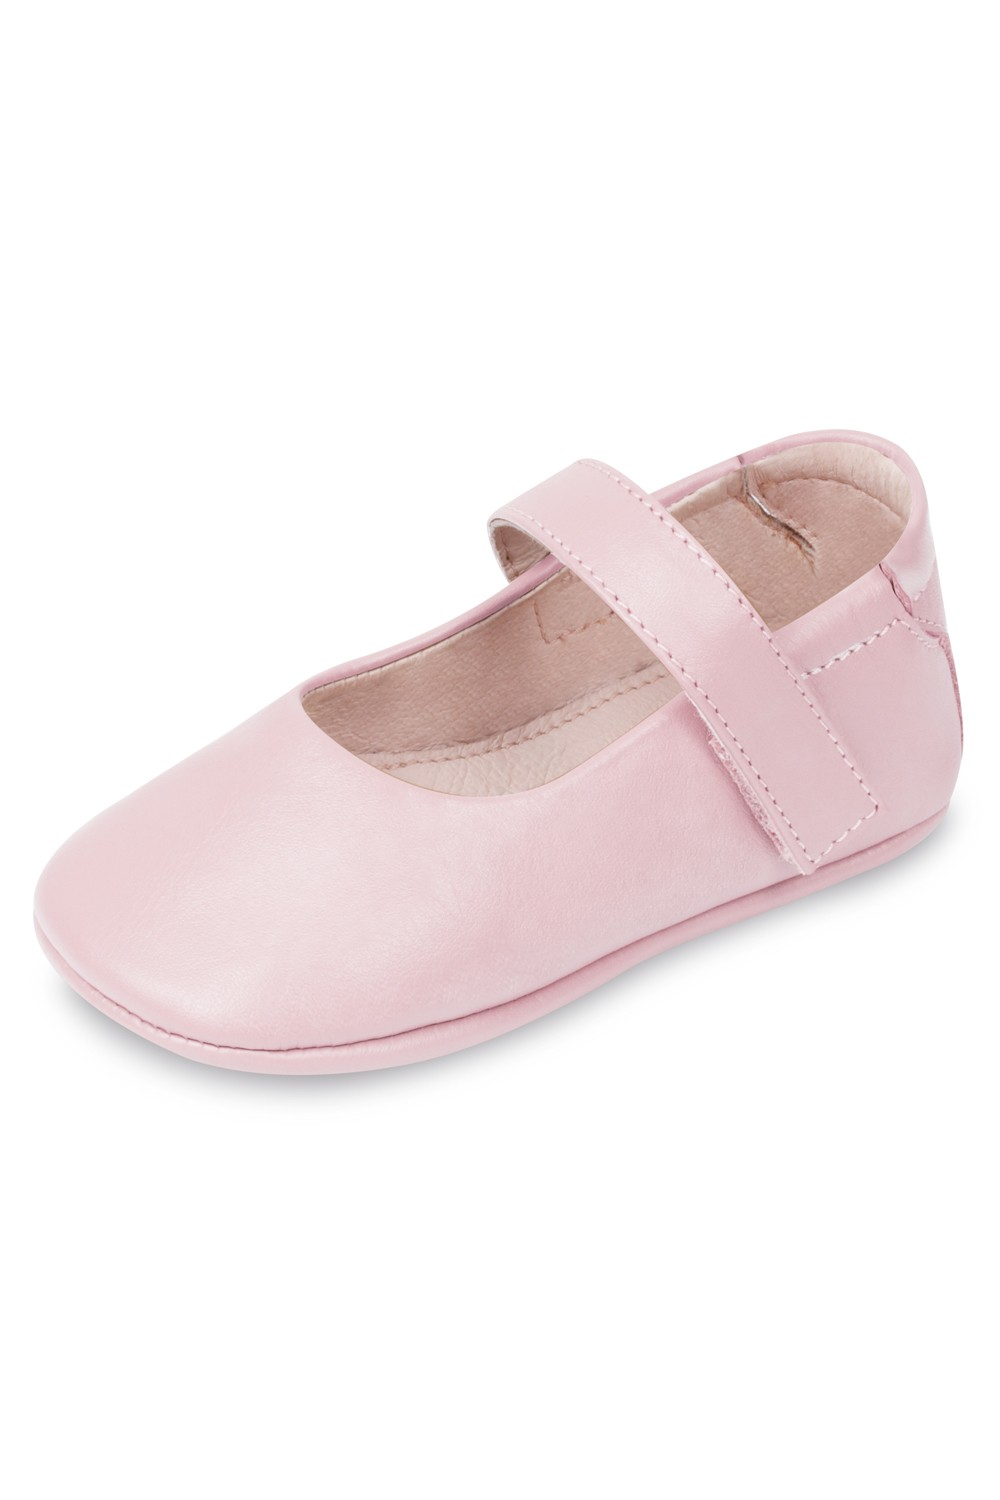 Laurel Babies Fashion Shoes